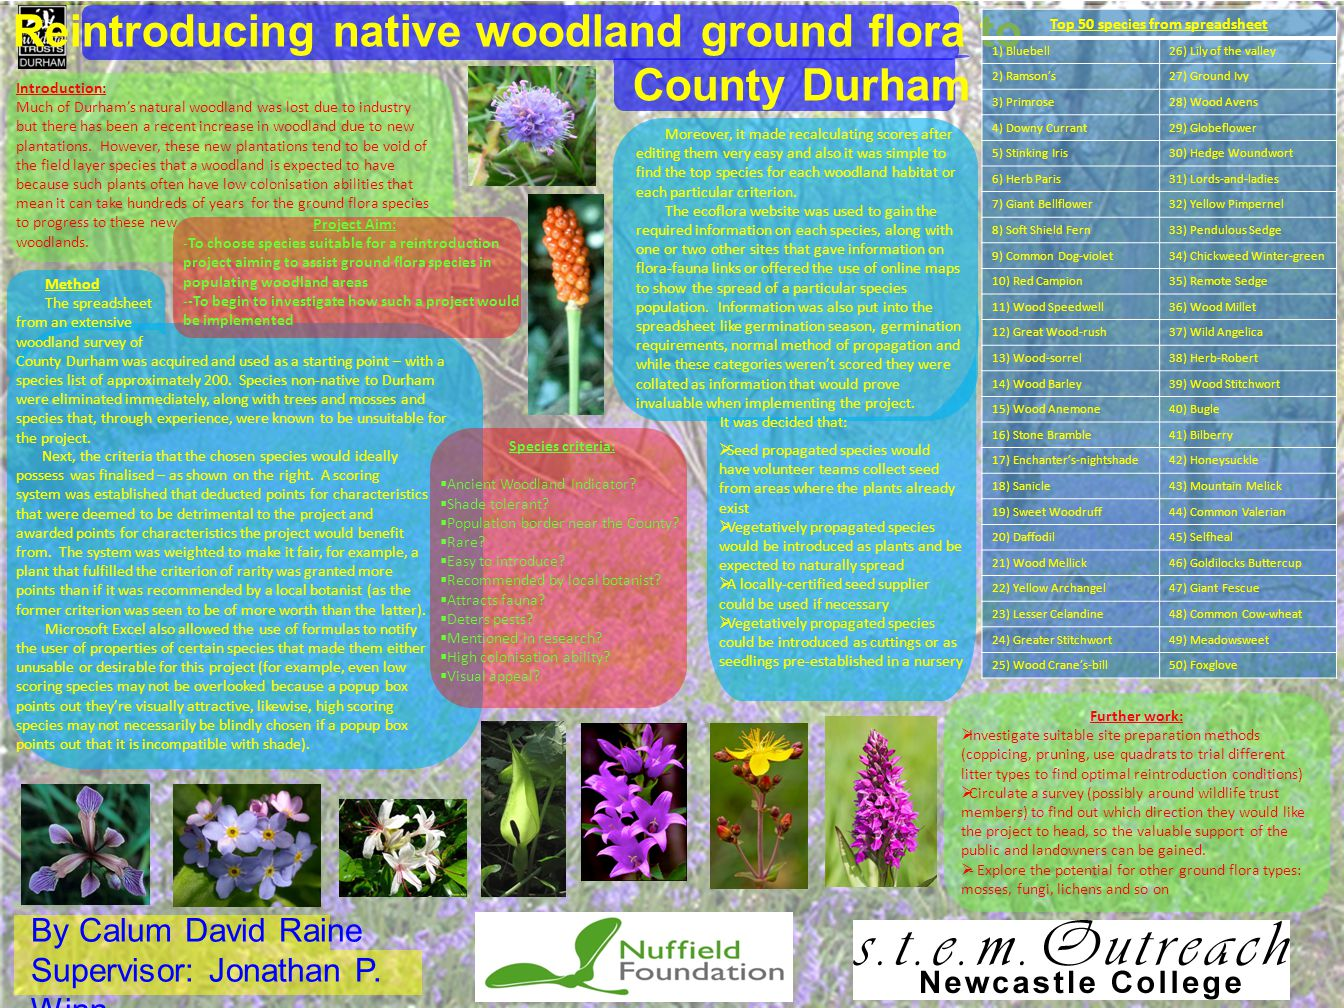 By Calum David Raine Supervisor: Jonathan P. Winn Reintroducing native woodland ground flora to County Durham Introduction: Much of Durham's natural w